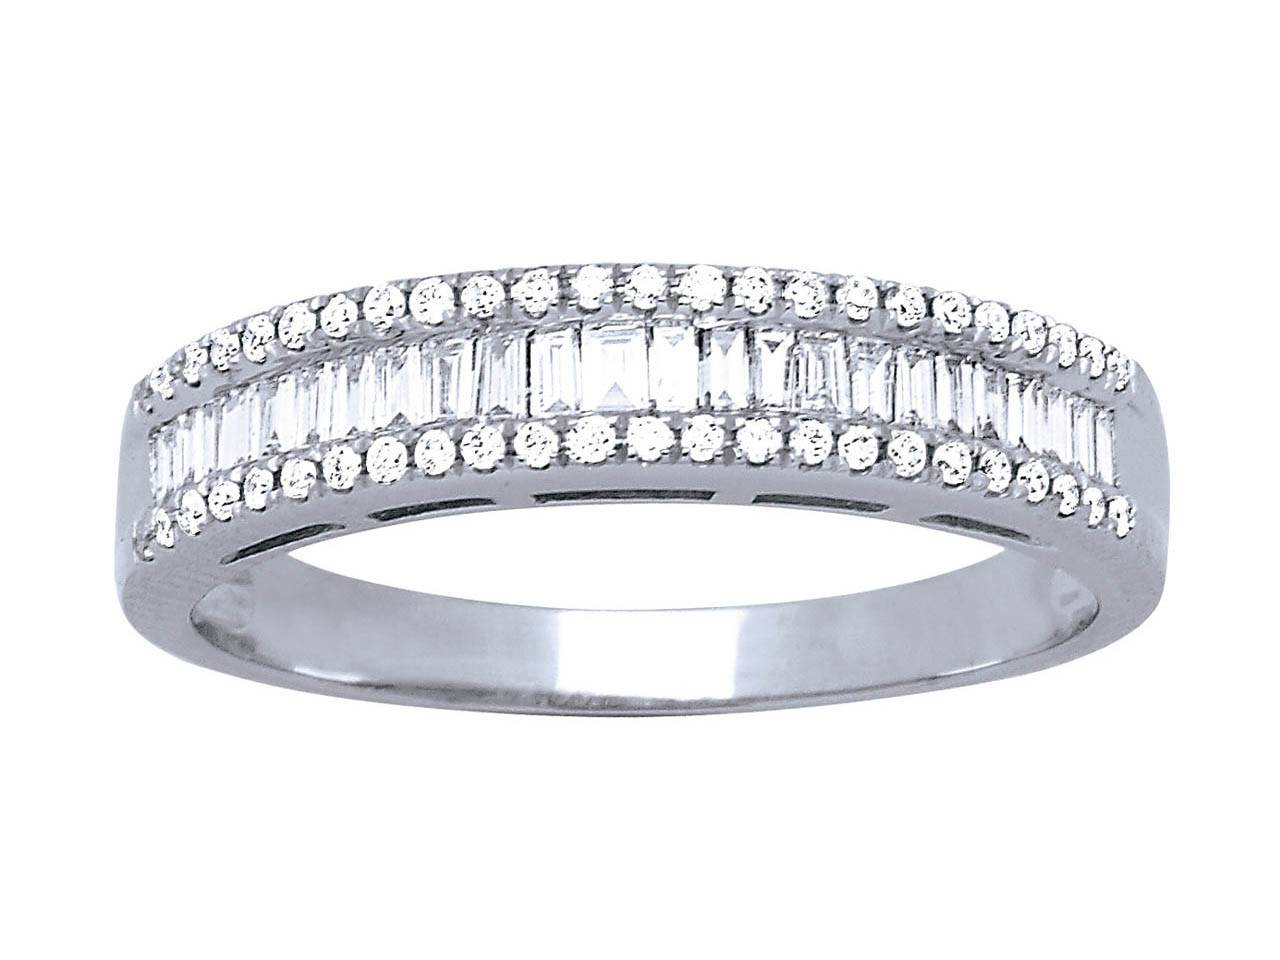 Bague alliance baguettes, Or gris, diamants 0,557  ct